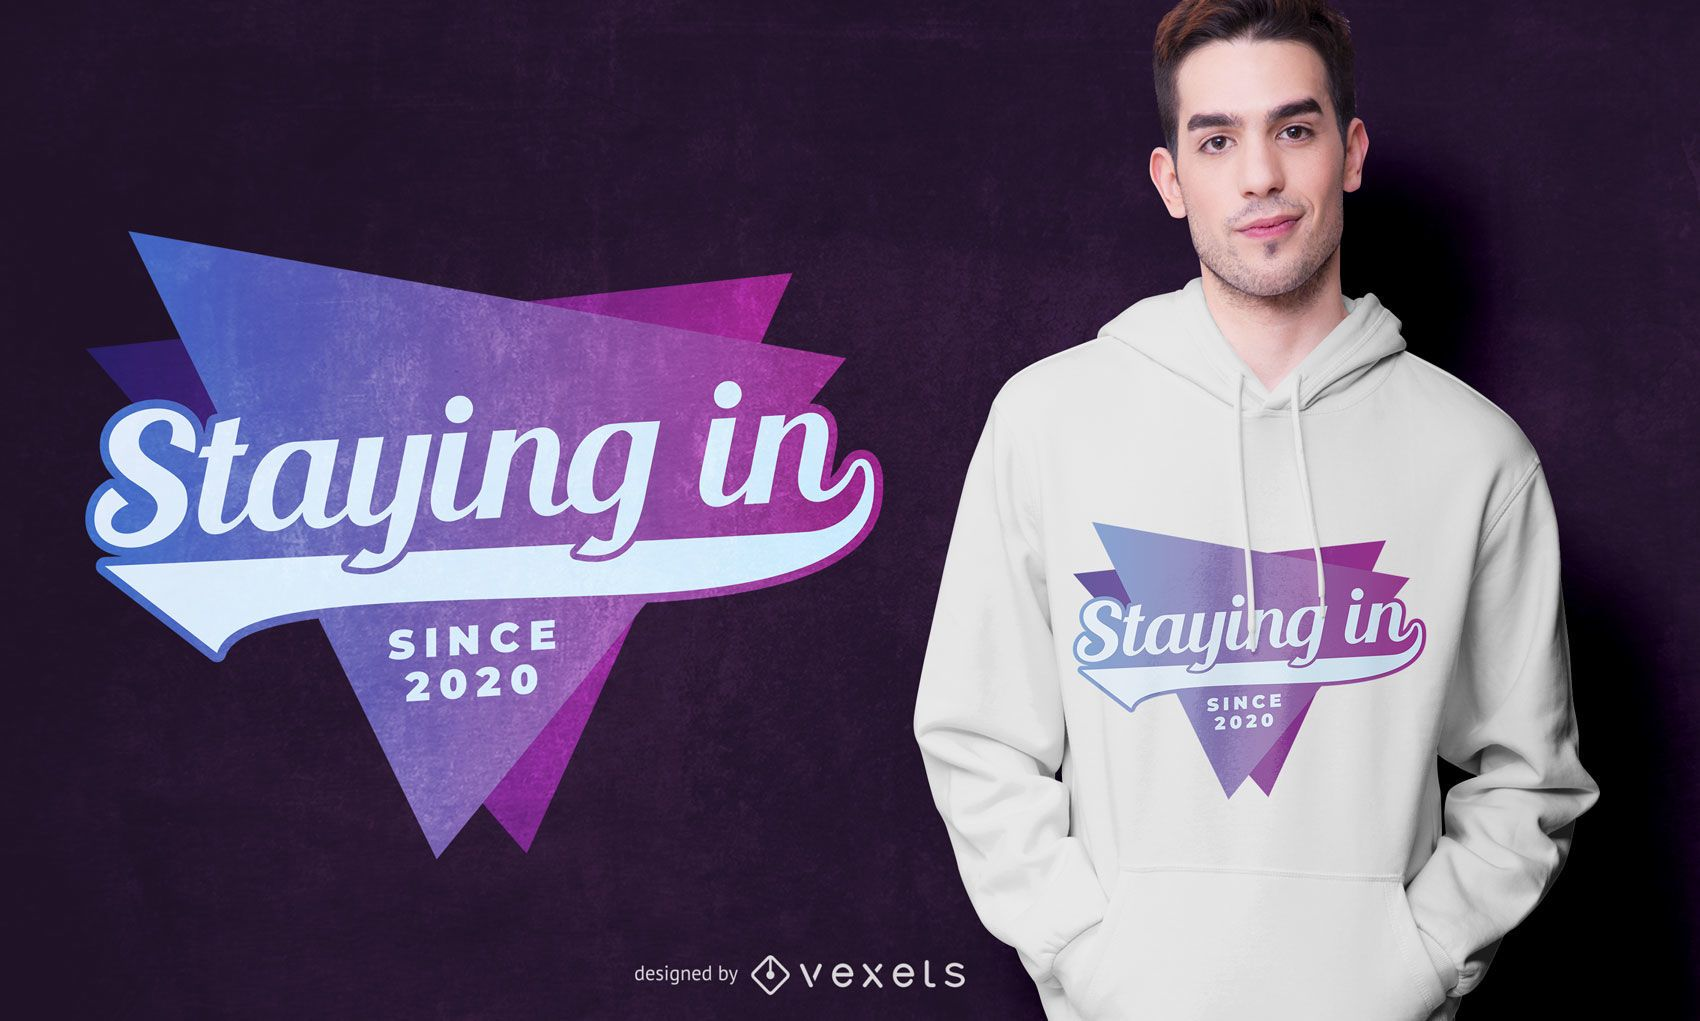 Staying in Since 2020 T-shirt Design